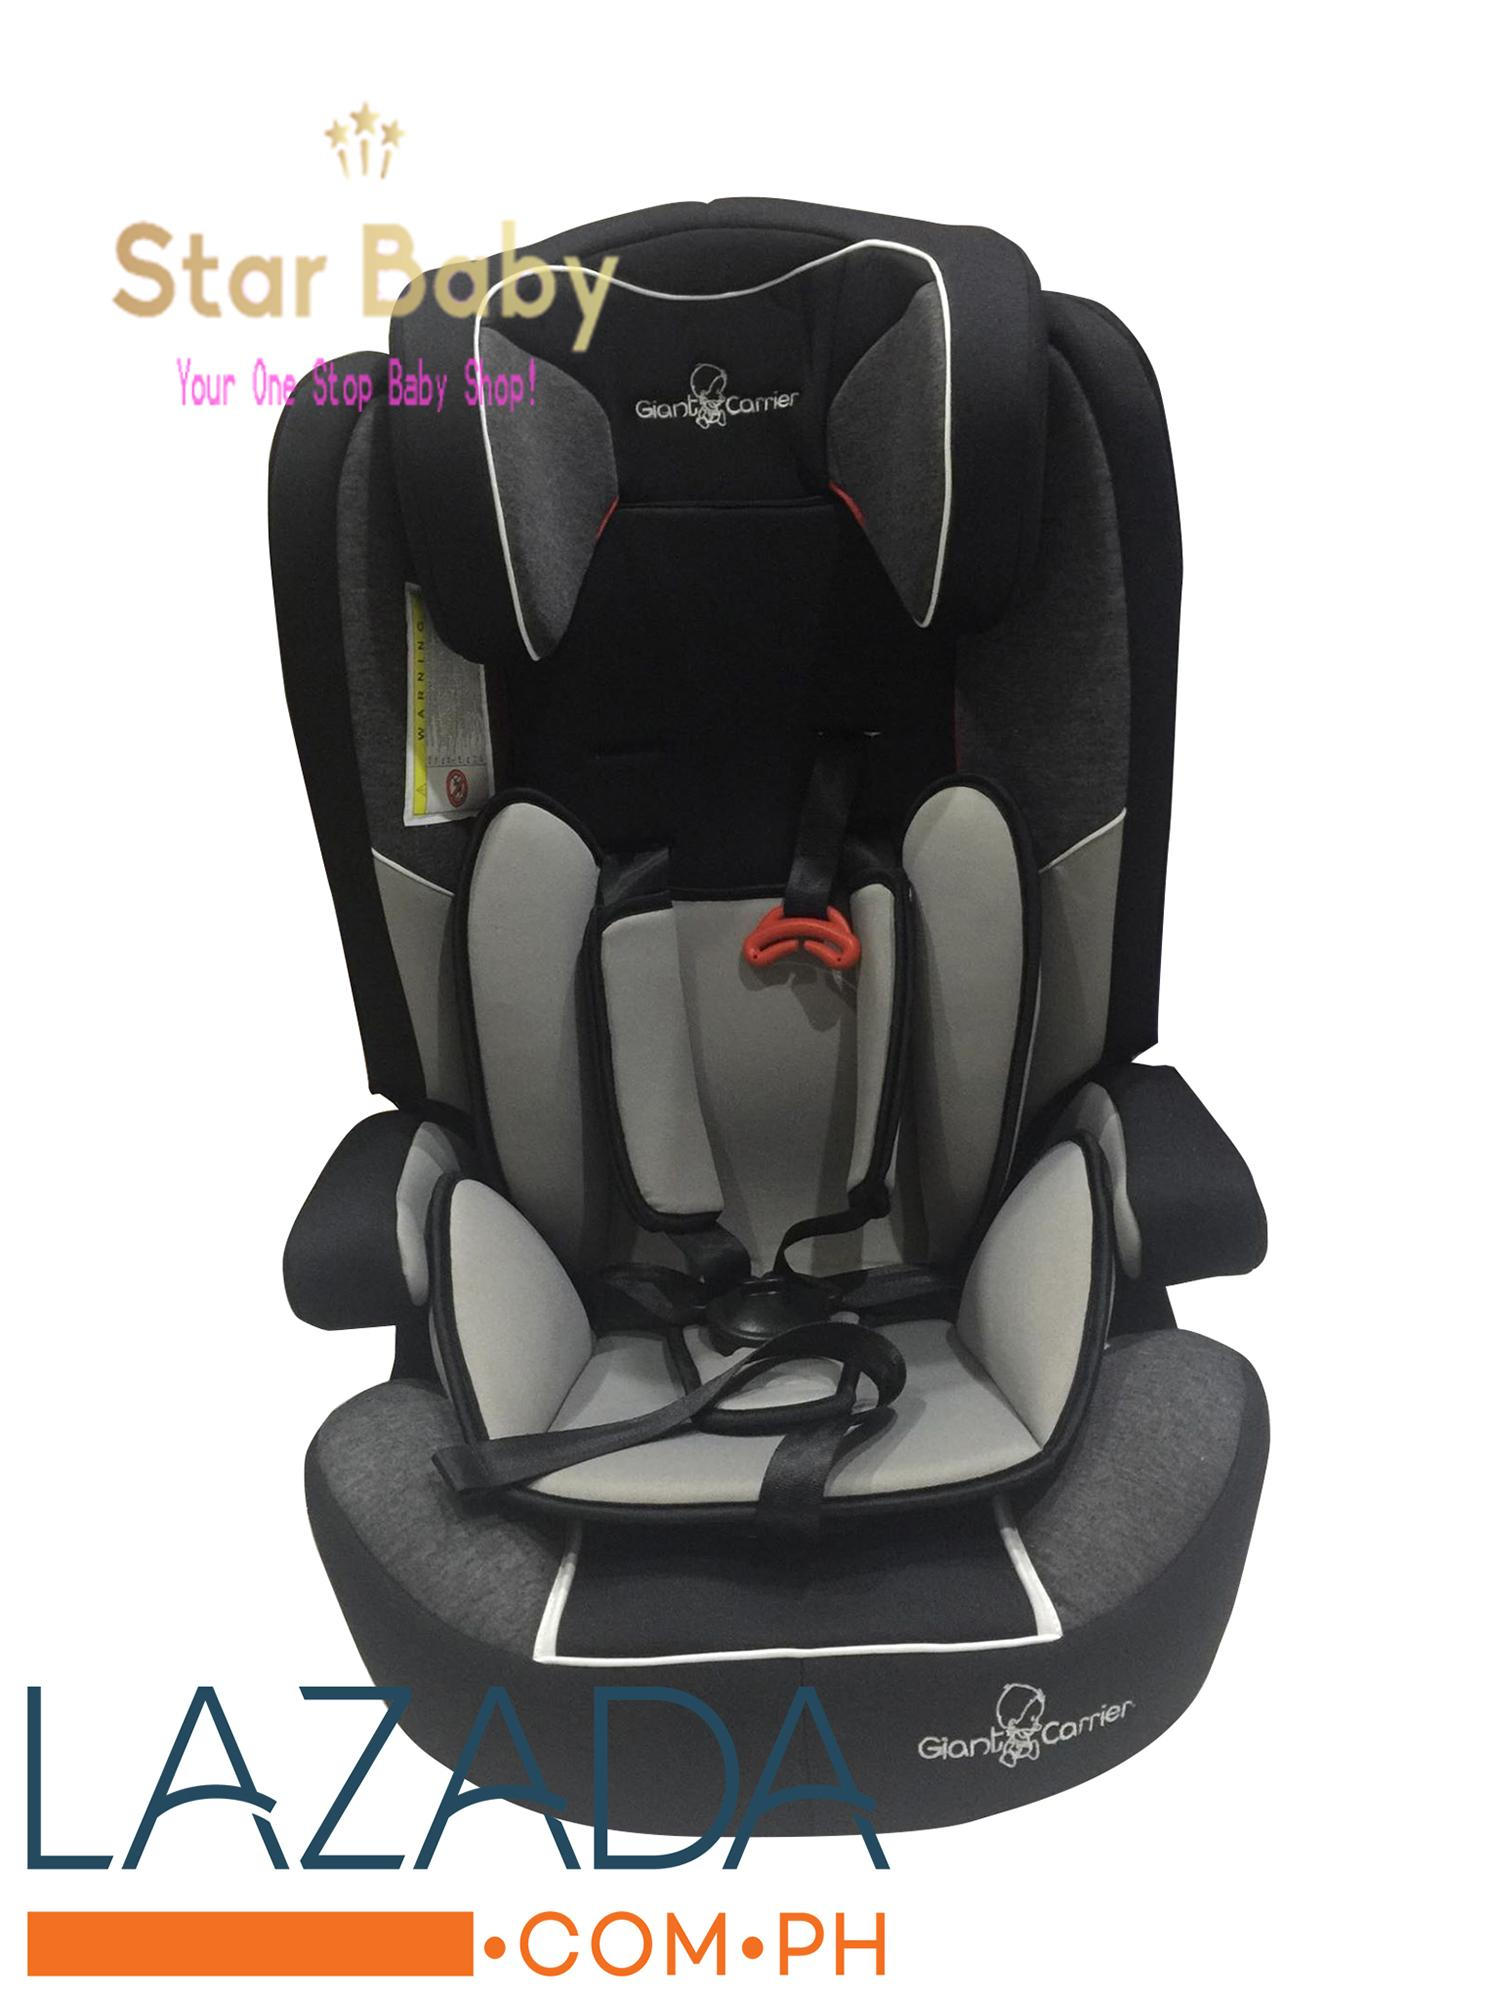 Giant Carrier Ziggy Carseat